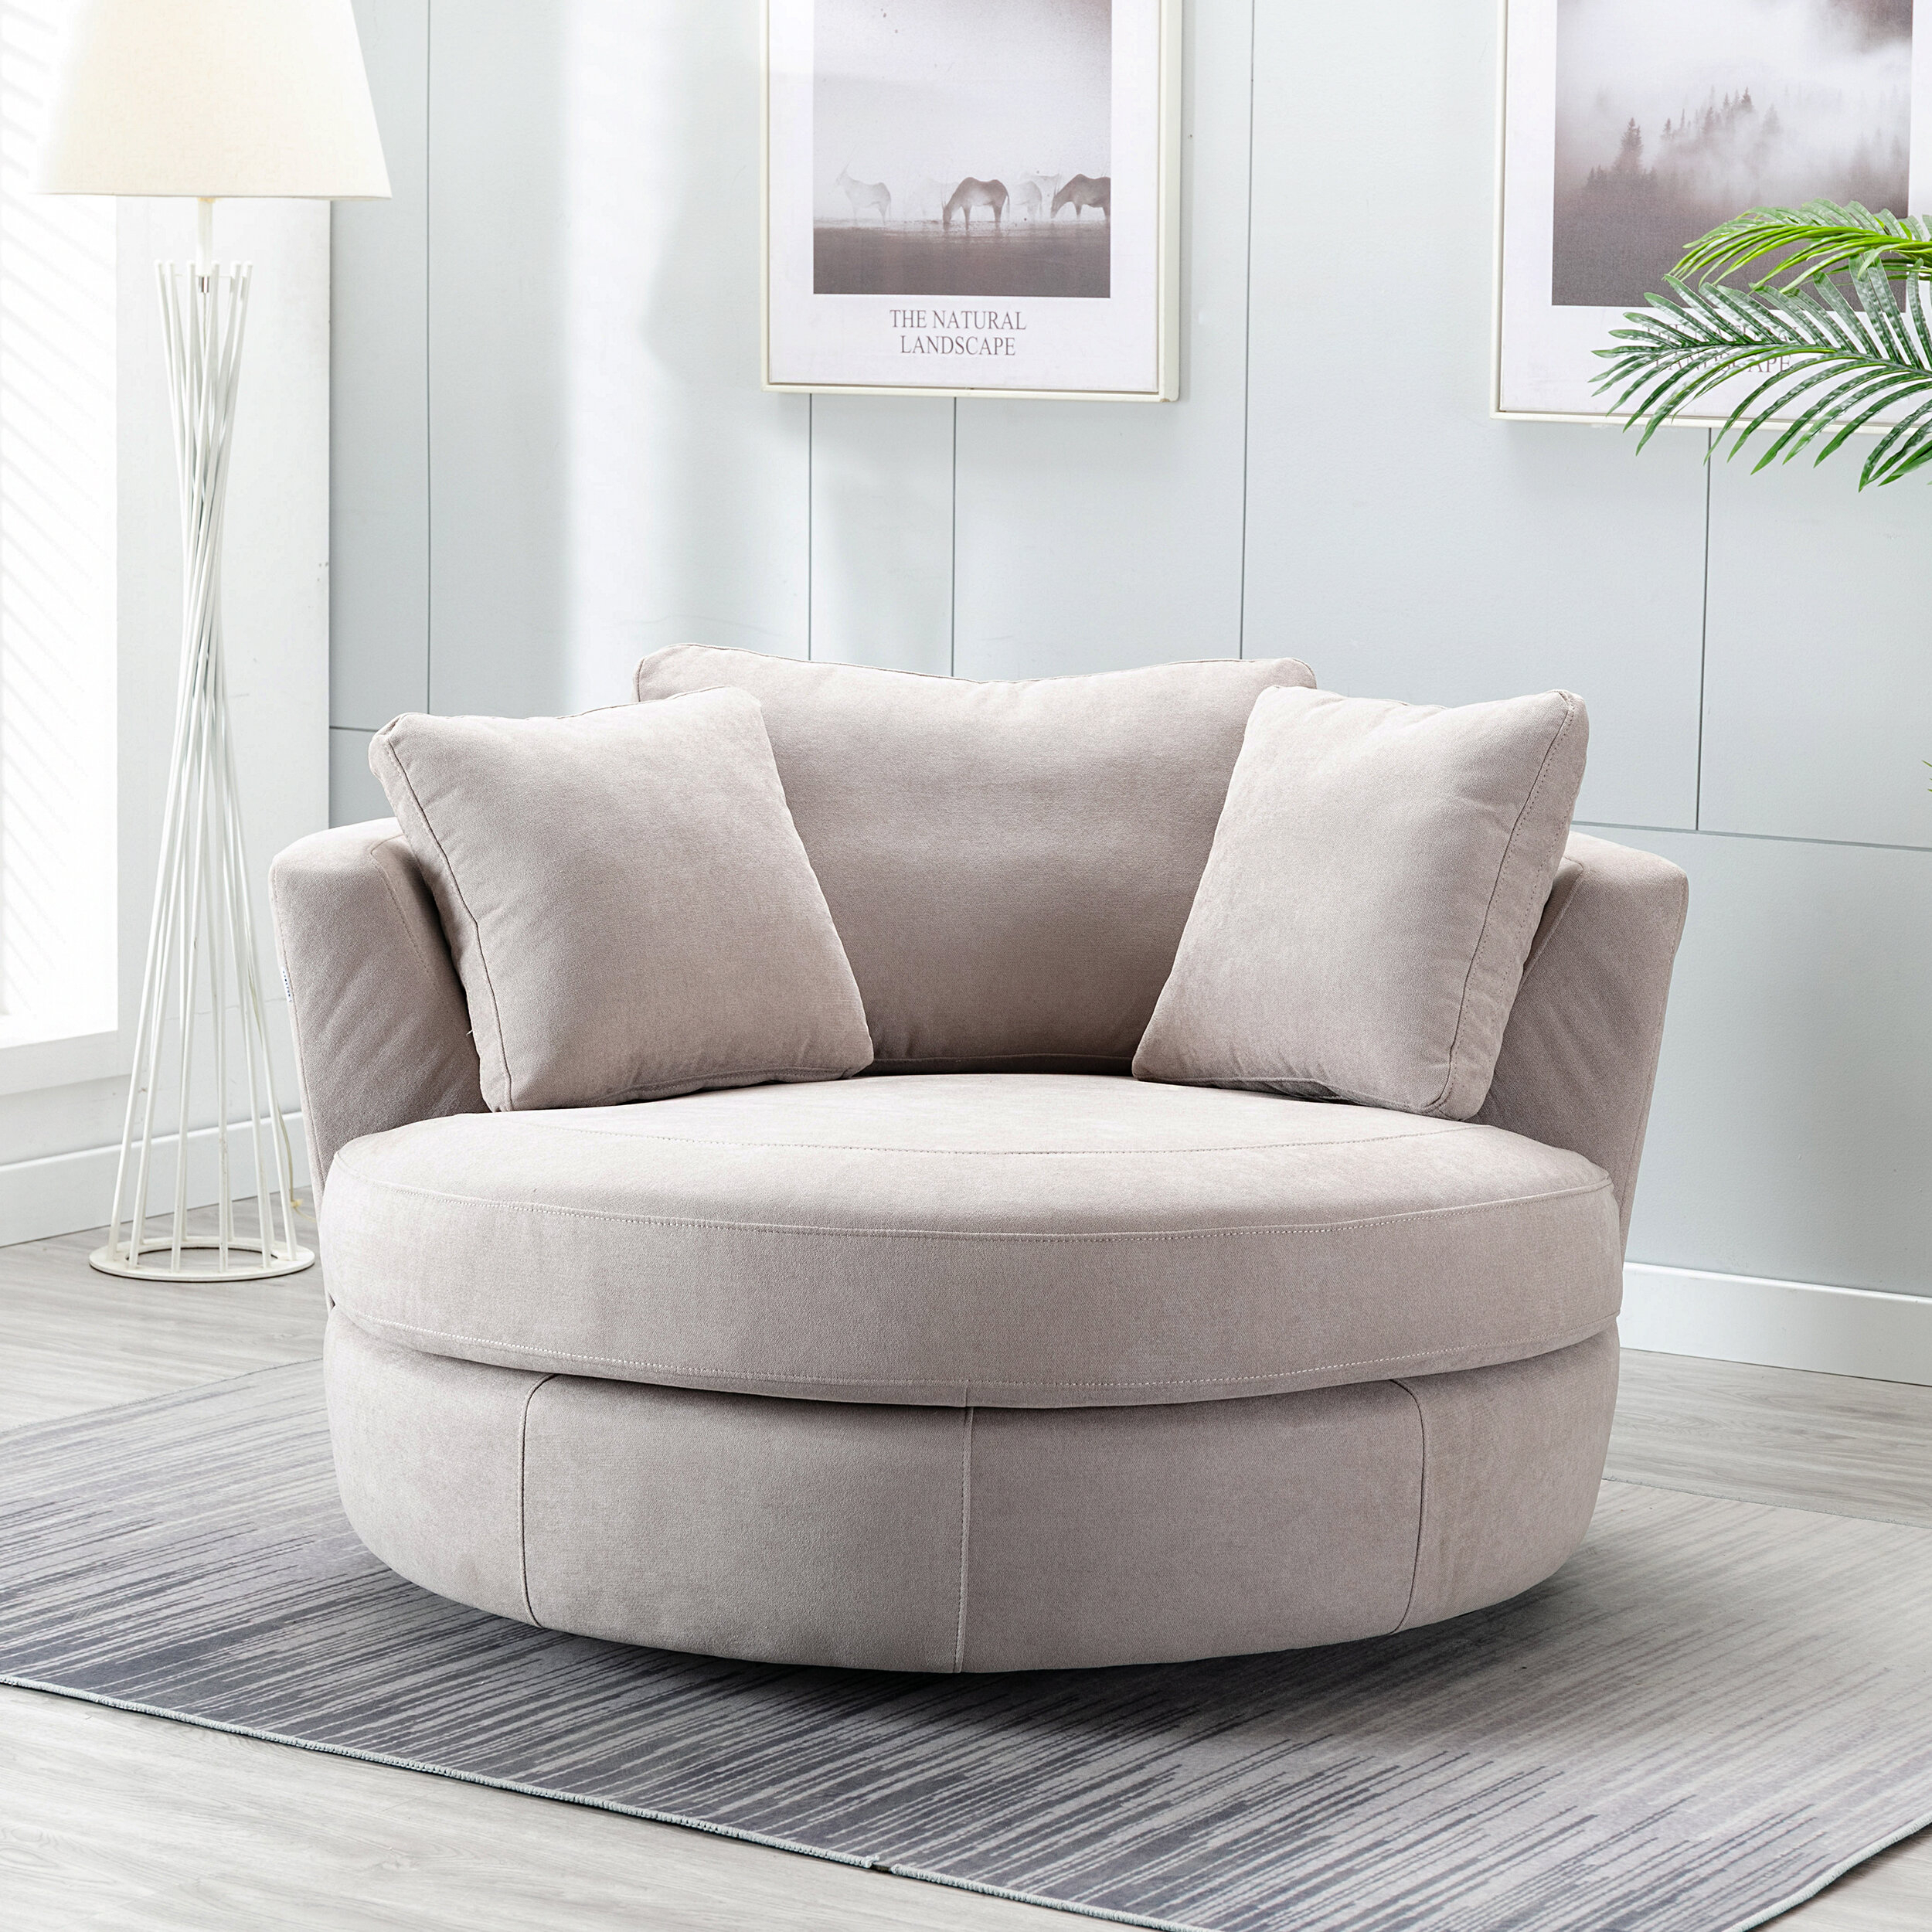 Minorca Elegant Round Swivel Barrel Chair With Artemi Barrel Chair And Ottoman Sets (View 14 of 15)